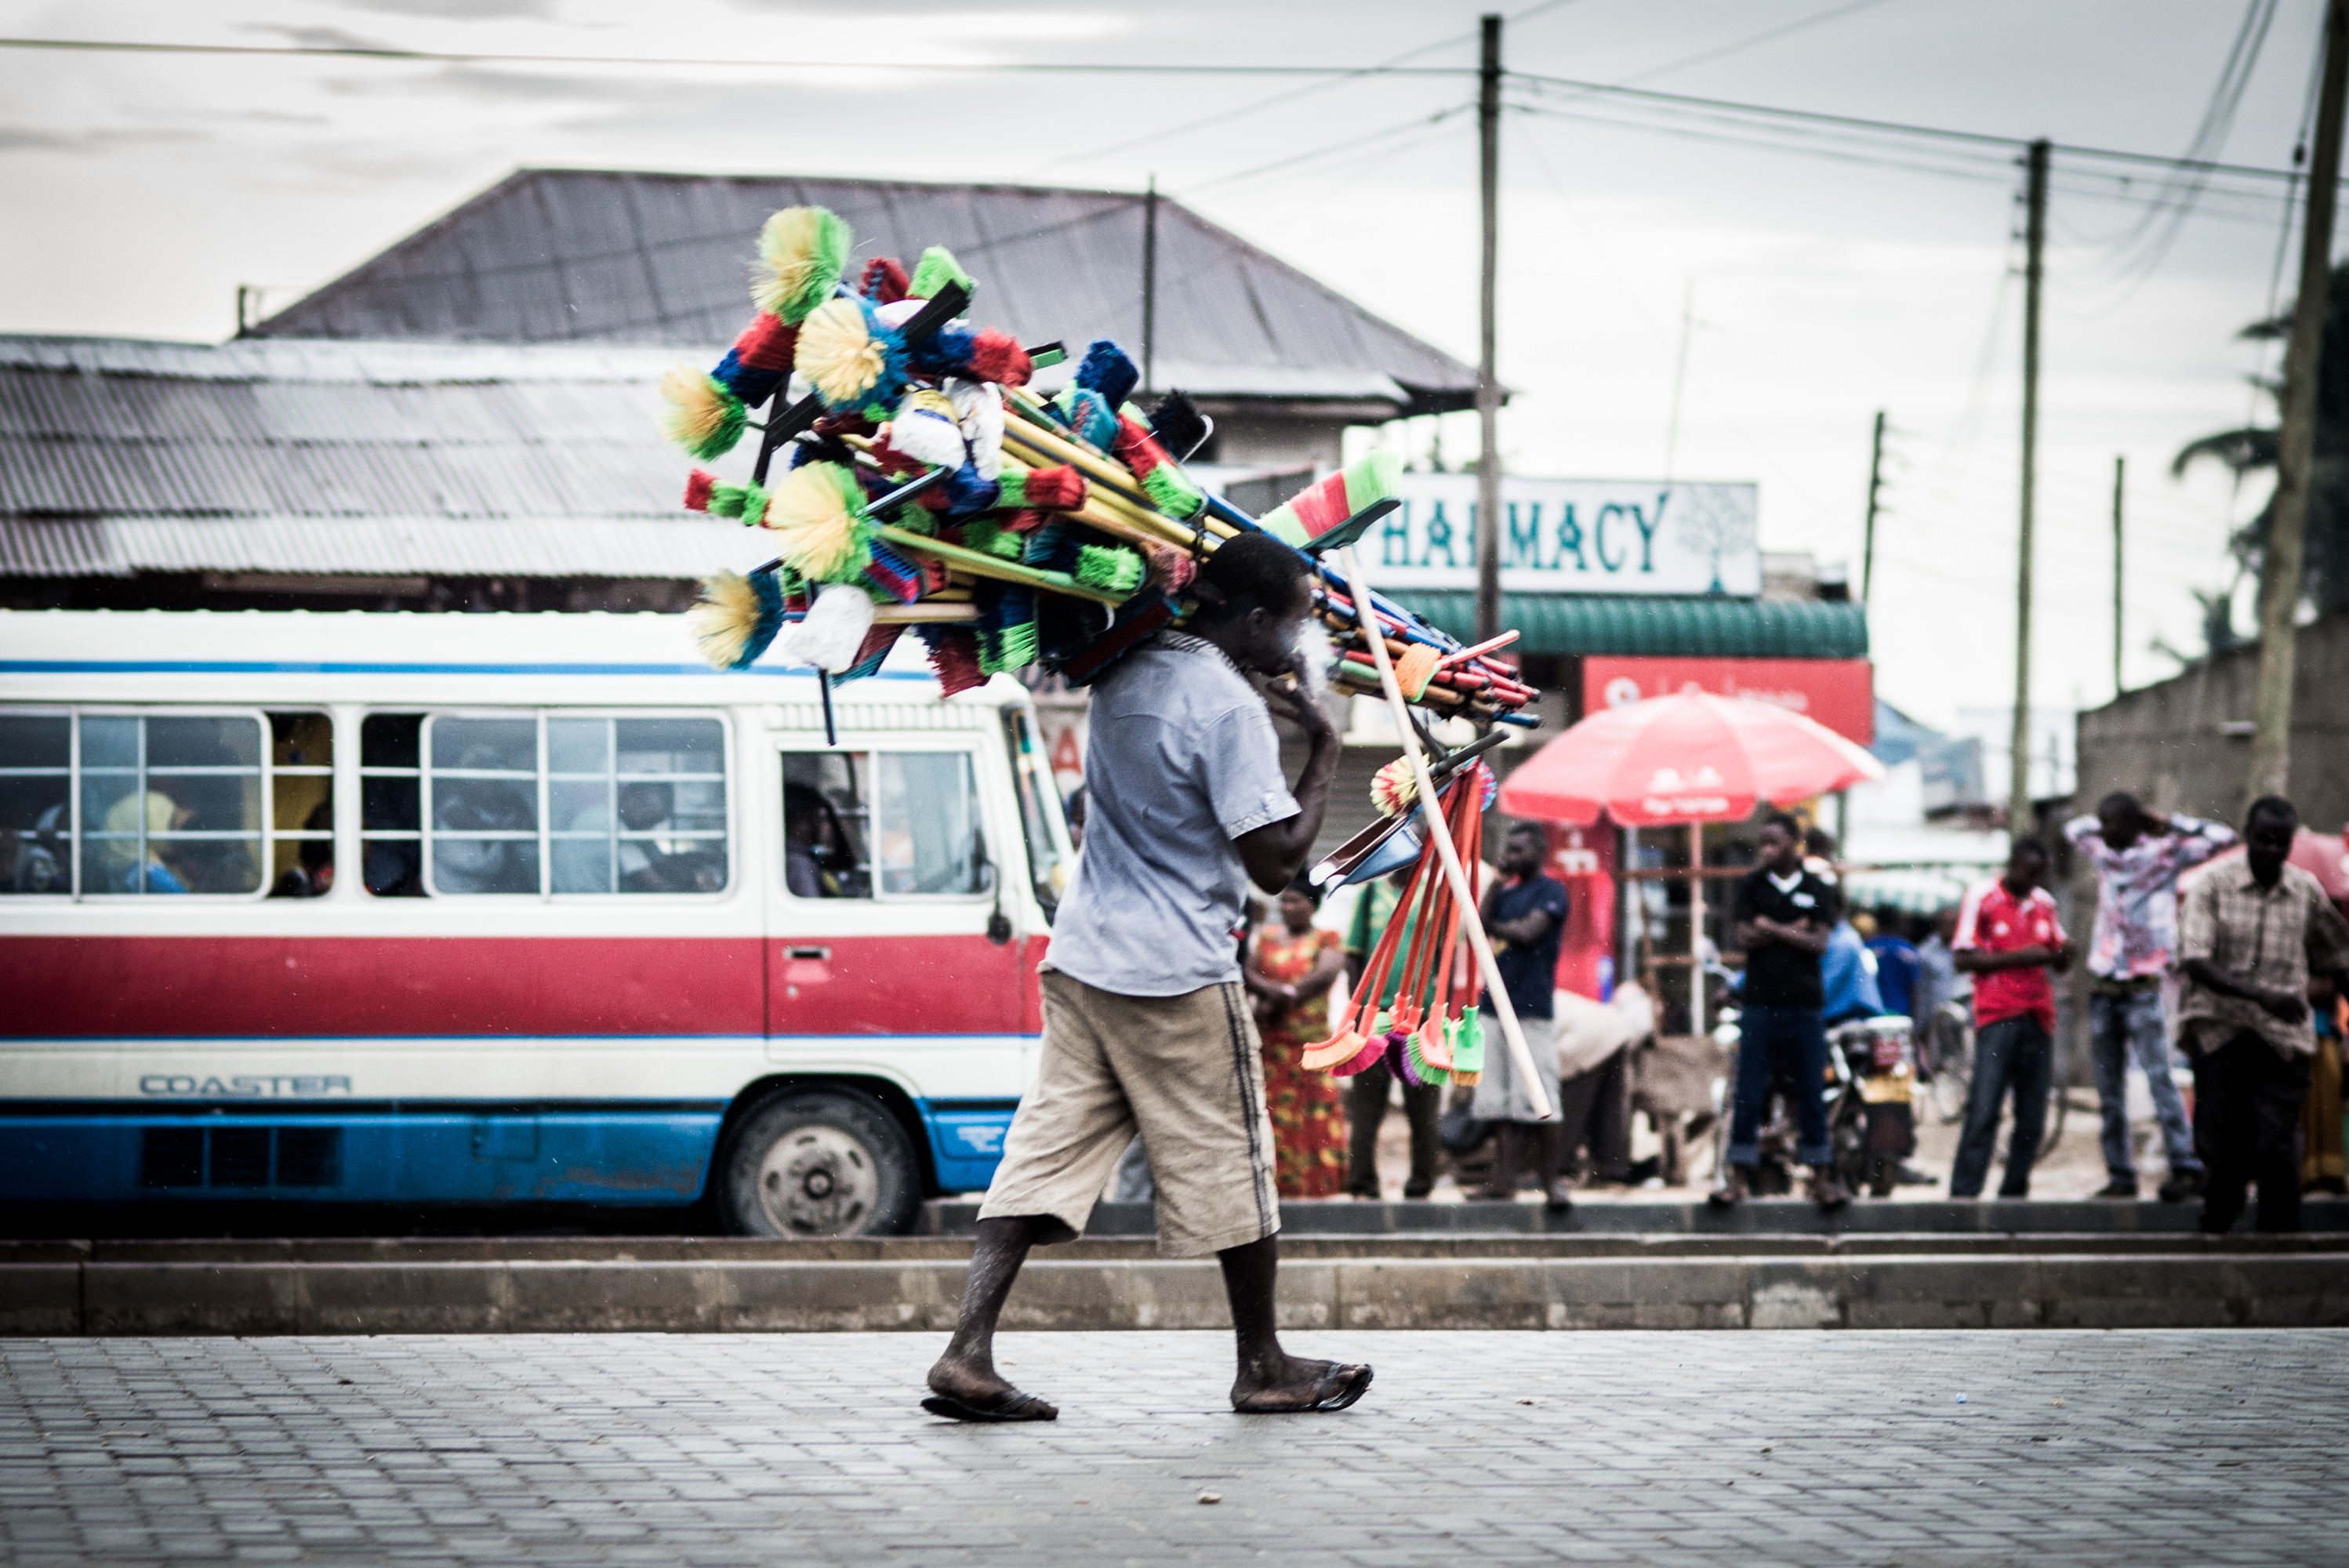 Man carries many brooms over shoulder in street